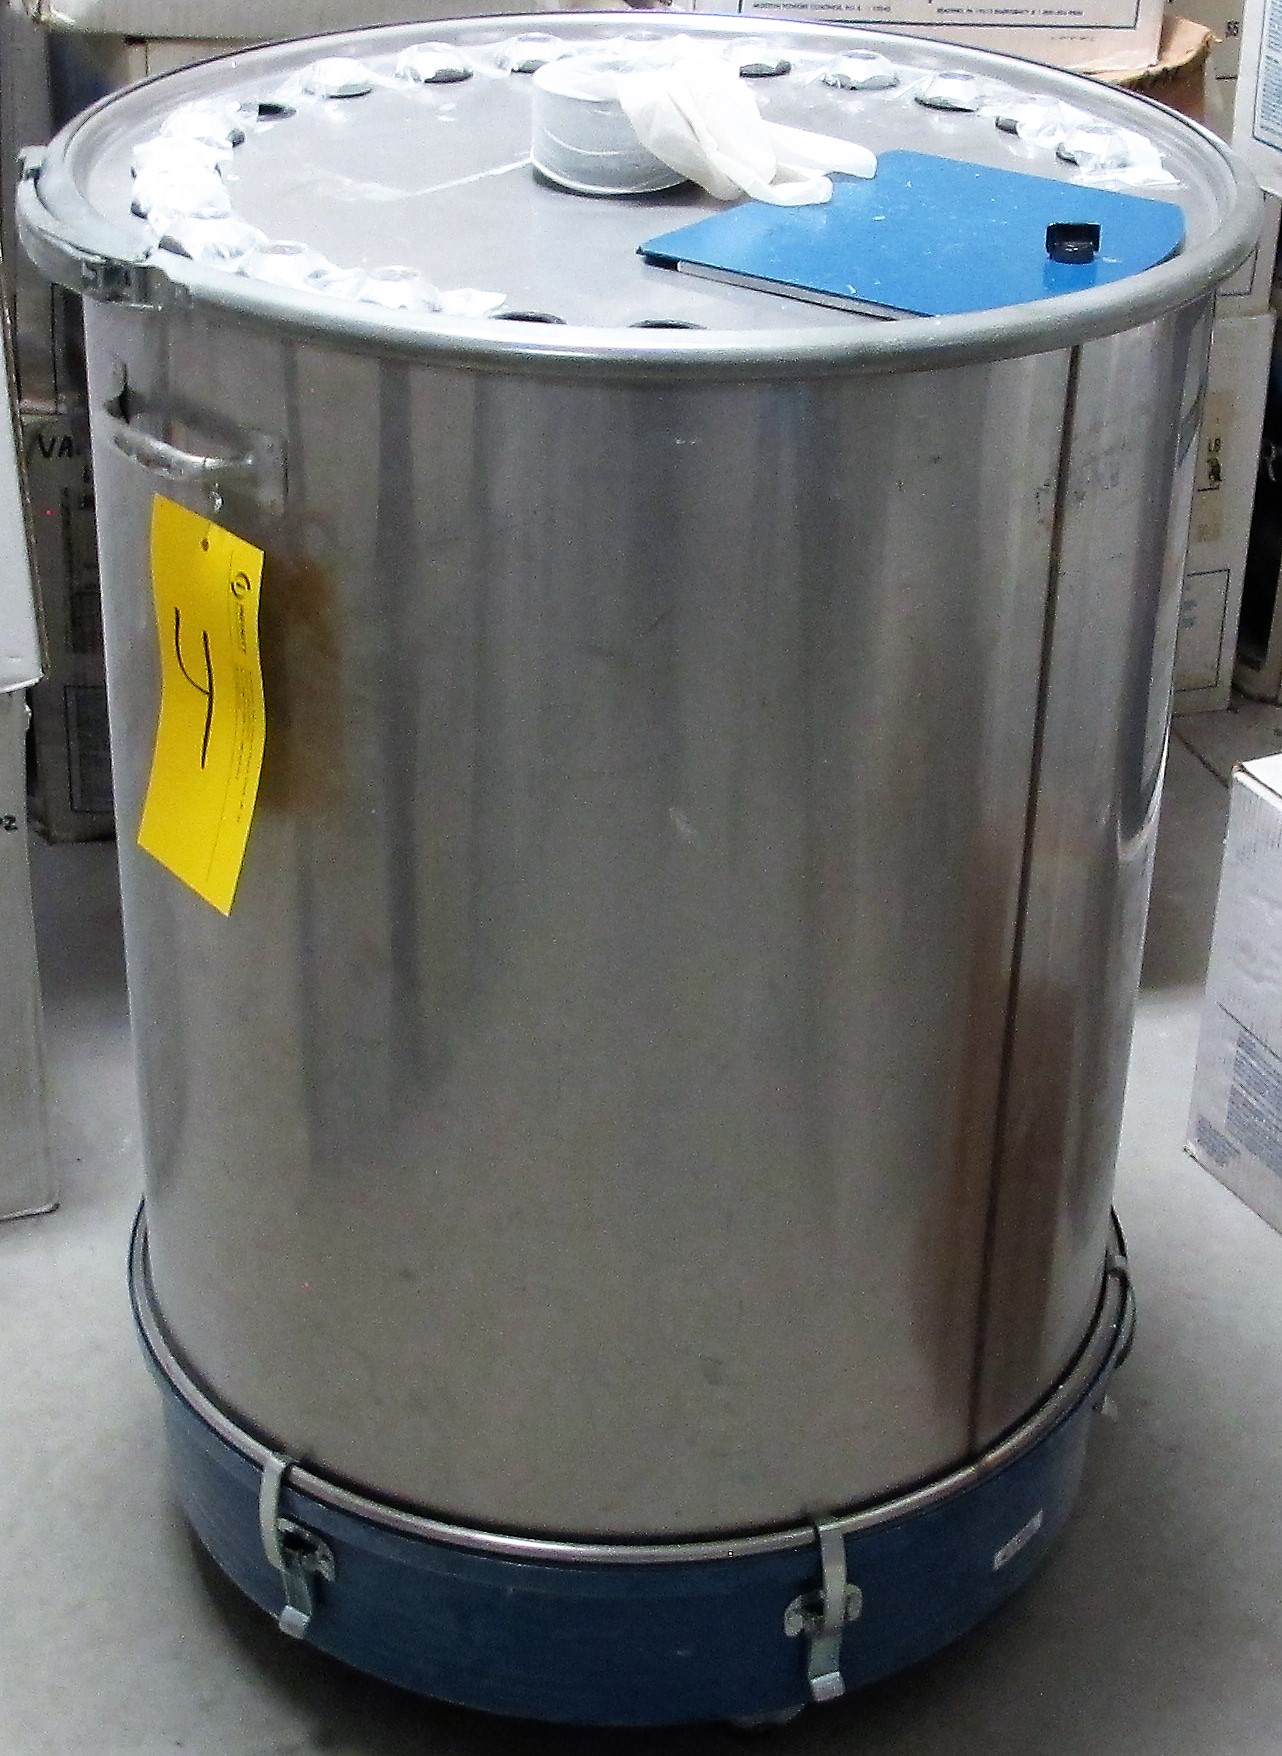 Lot 4 - LOT OF (3) NORDSON STAINLESS STEEL PORTABLE PAINT MIXING TANKS (SUBJECT TO BULK BID)